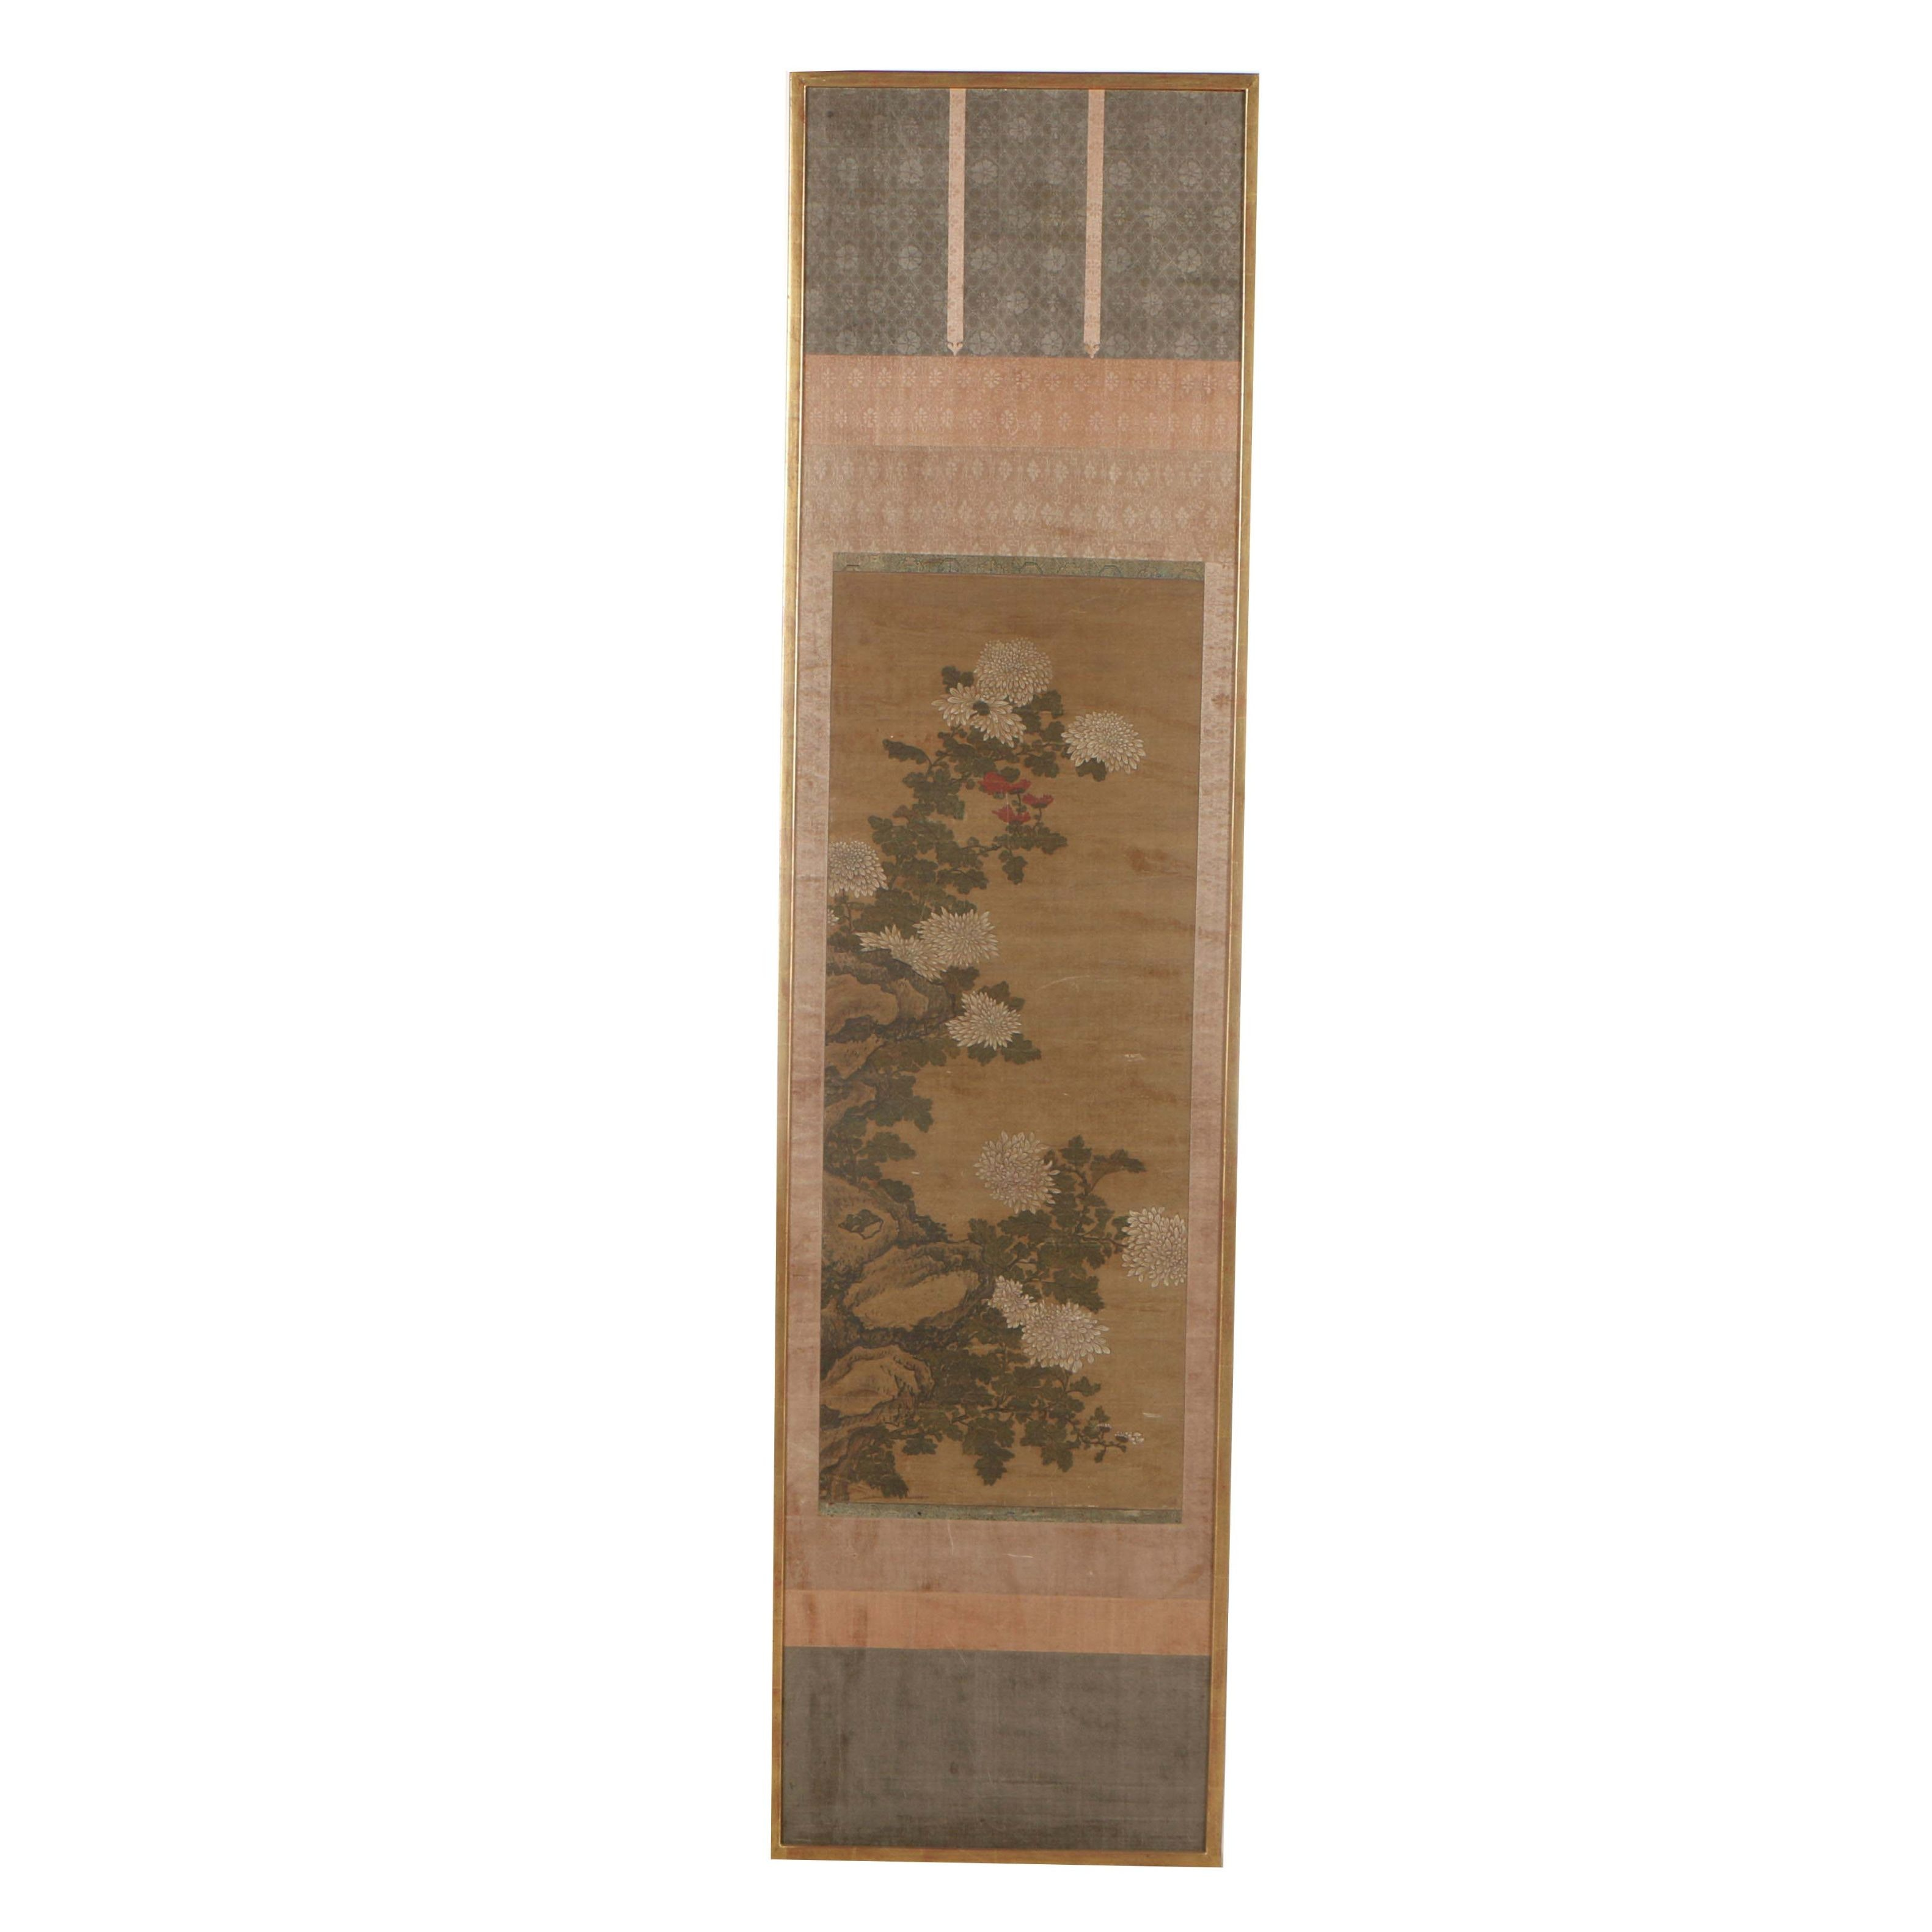 Chinese Gouache Hanging Scroll of Chrysanthemums